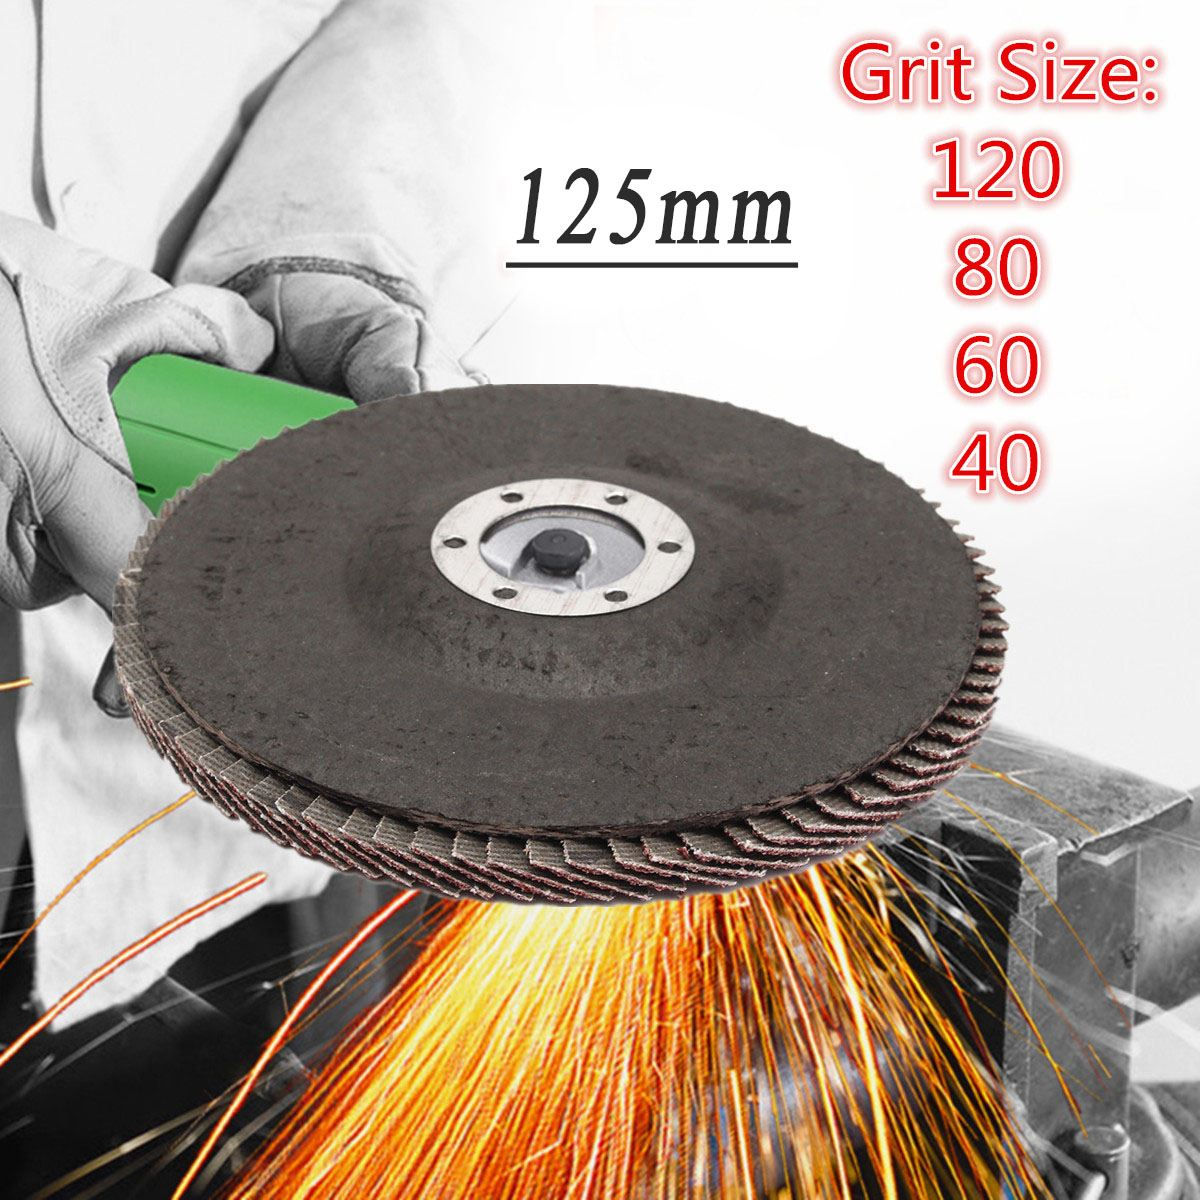 125mm 5 Inch 40/60/80/120 Grit Grinding Wheel Flap Disc Angle Grinder Sanding Tool 13000 Rpm Aluminum Oxide Abrasive Tools